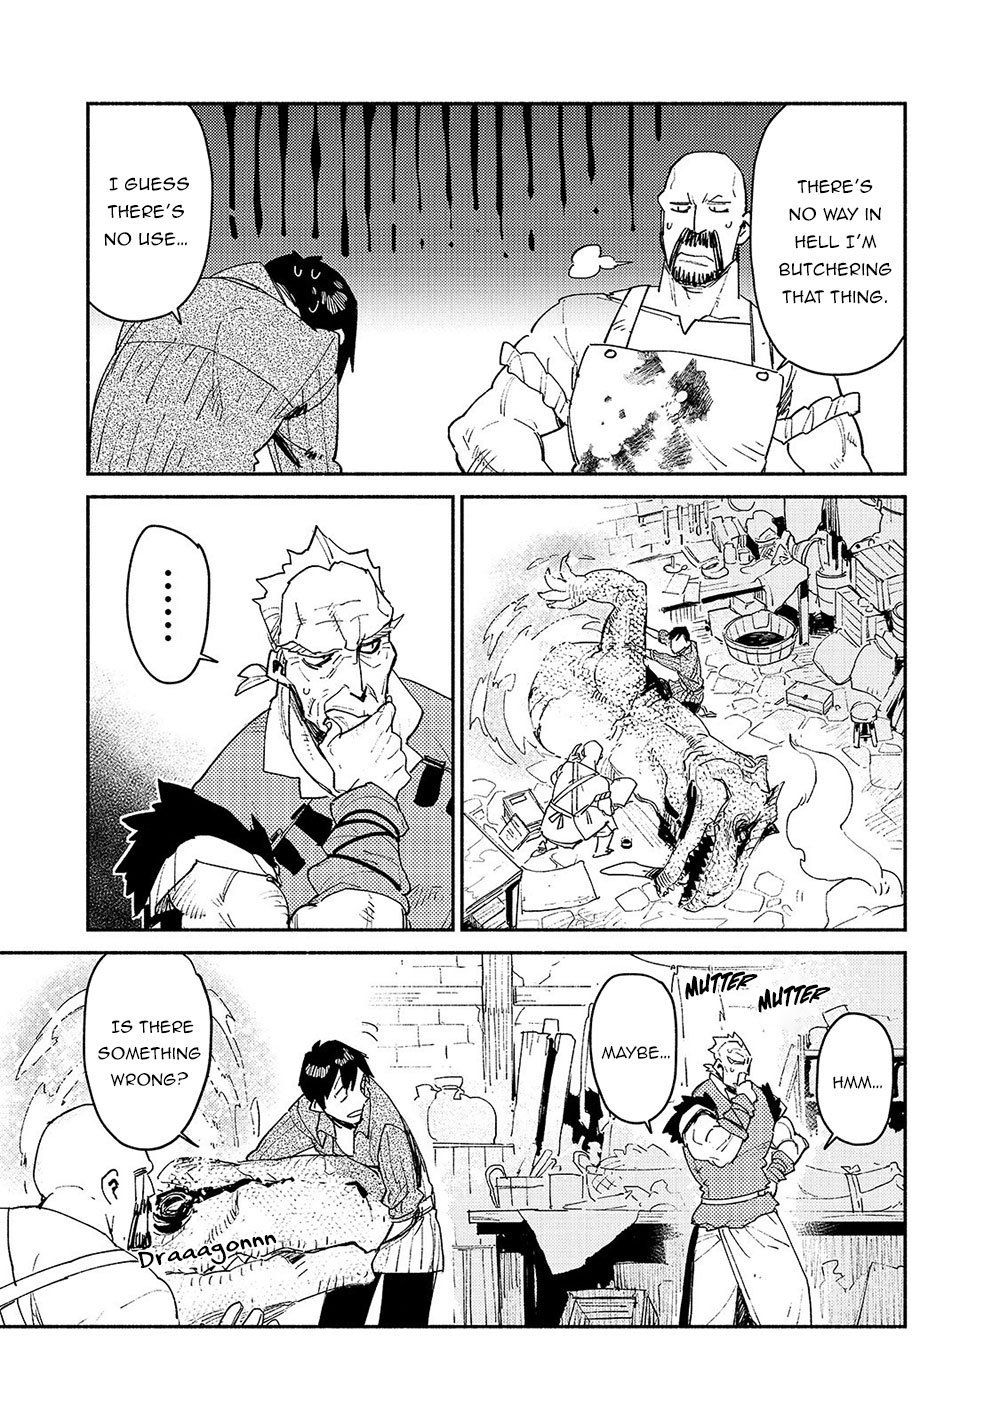 Manga Regarding the Display of an Outrageous Skill Which Has Incredible Powers - Chapter 33 Page 8